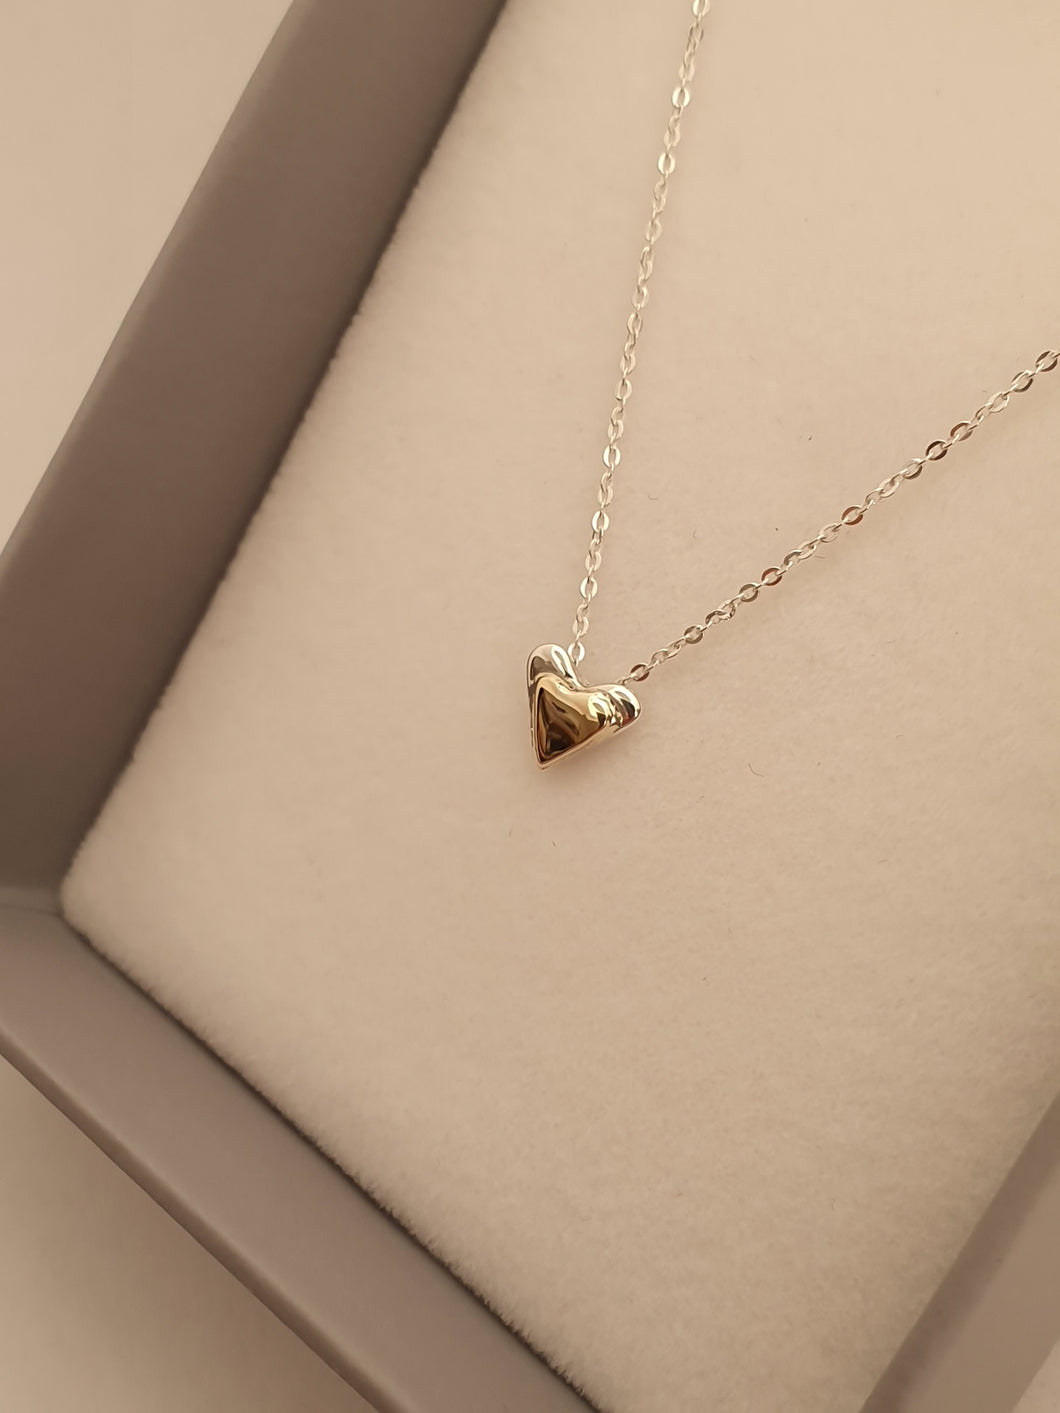 925 Sterling silver & 9ct gold heart necklace